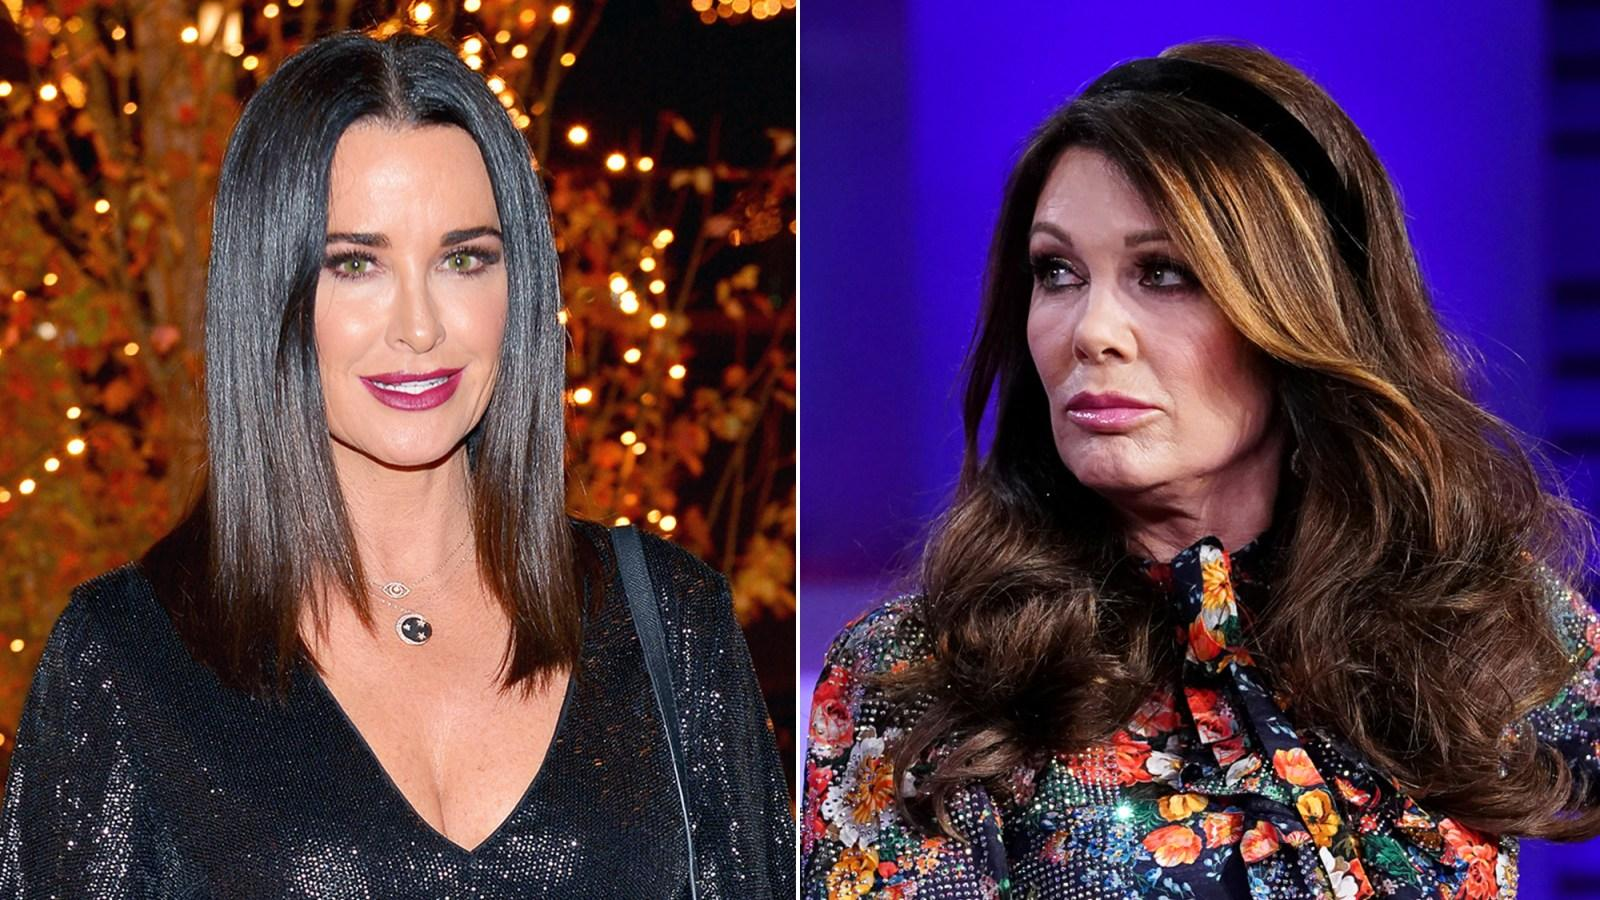 Lisa Vanderpump Reacts To Kyle Richards Dissing Her For Not Attending Andy Cohen's Baby Shower - Check Out Her Savage Response!